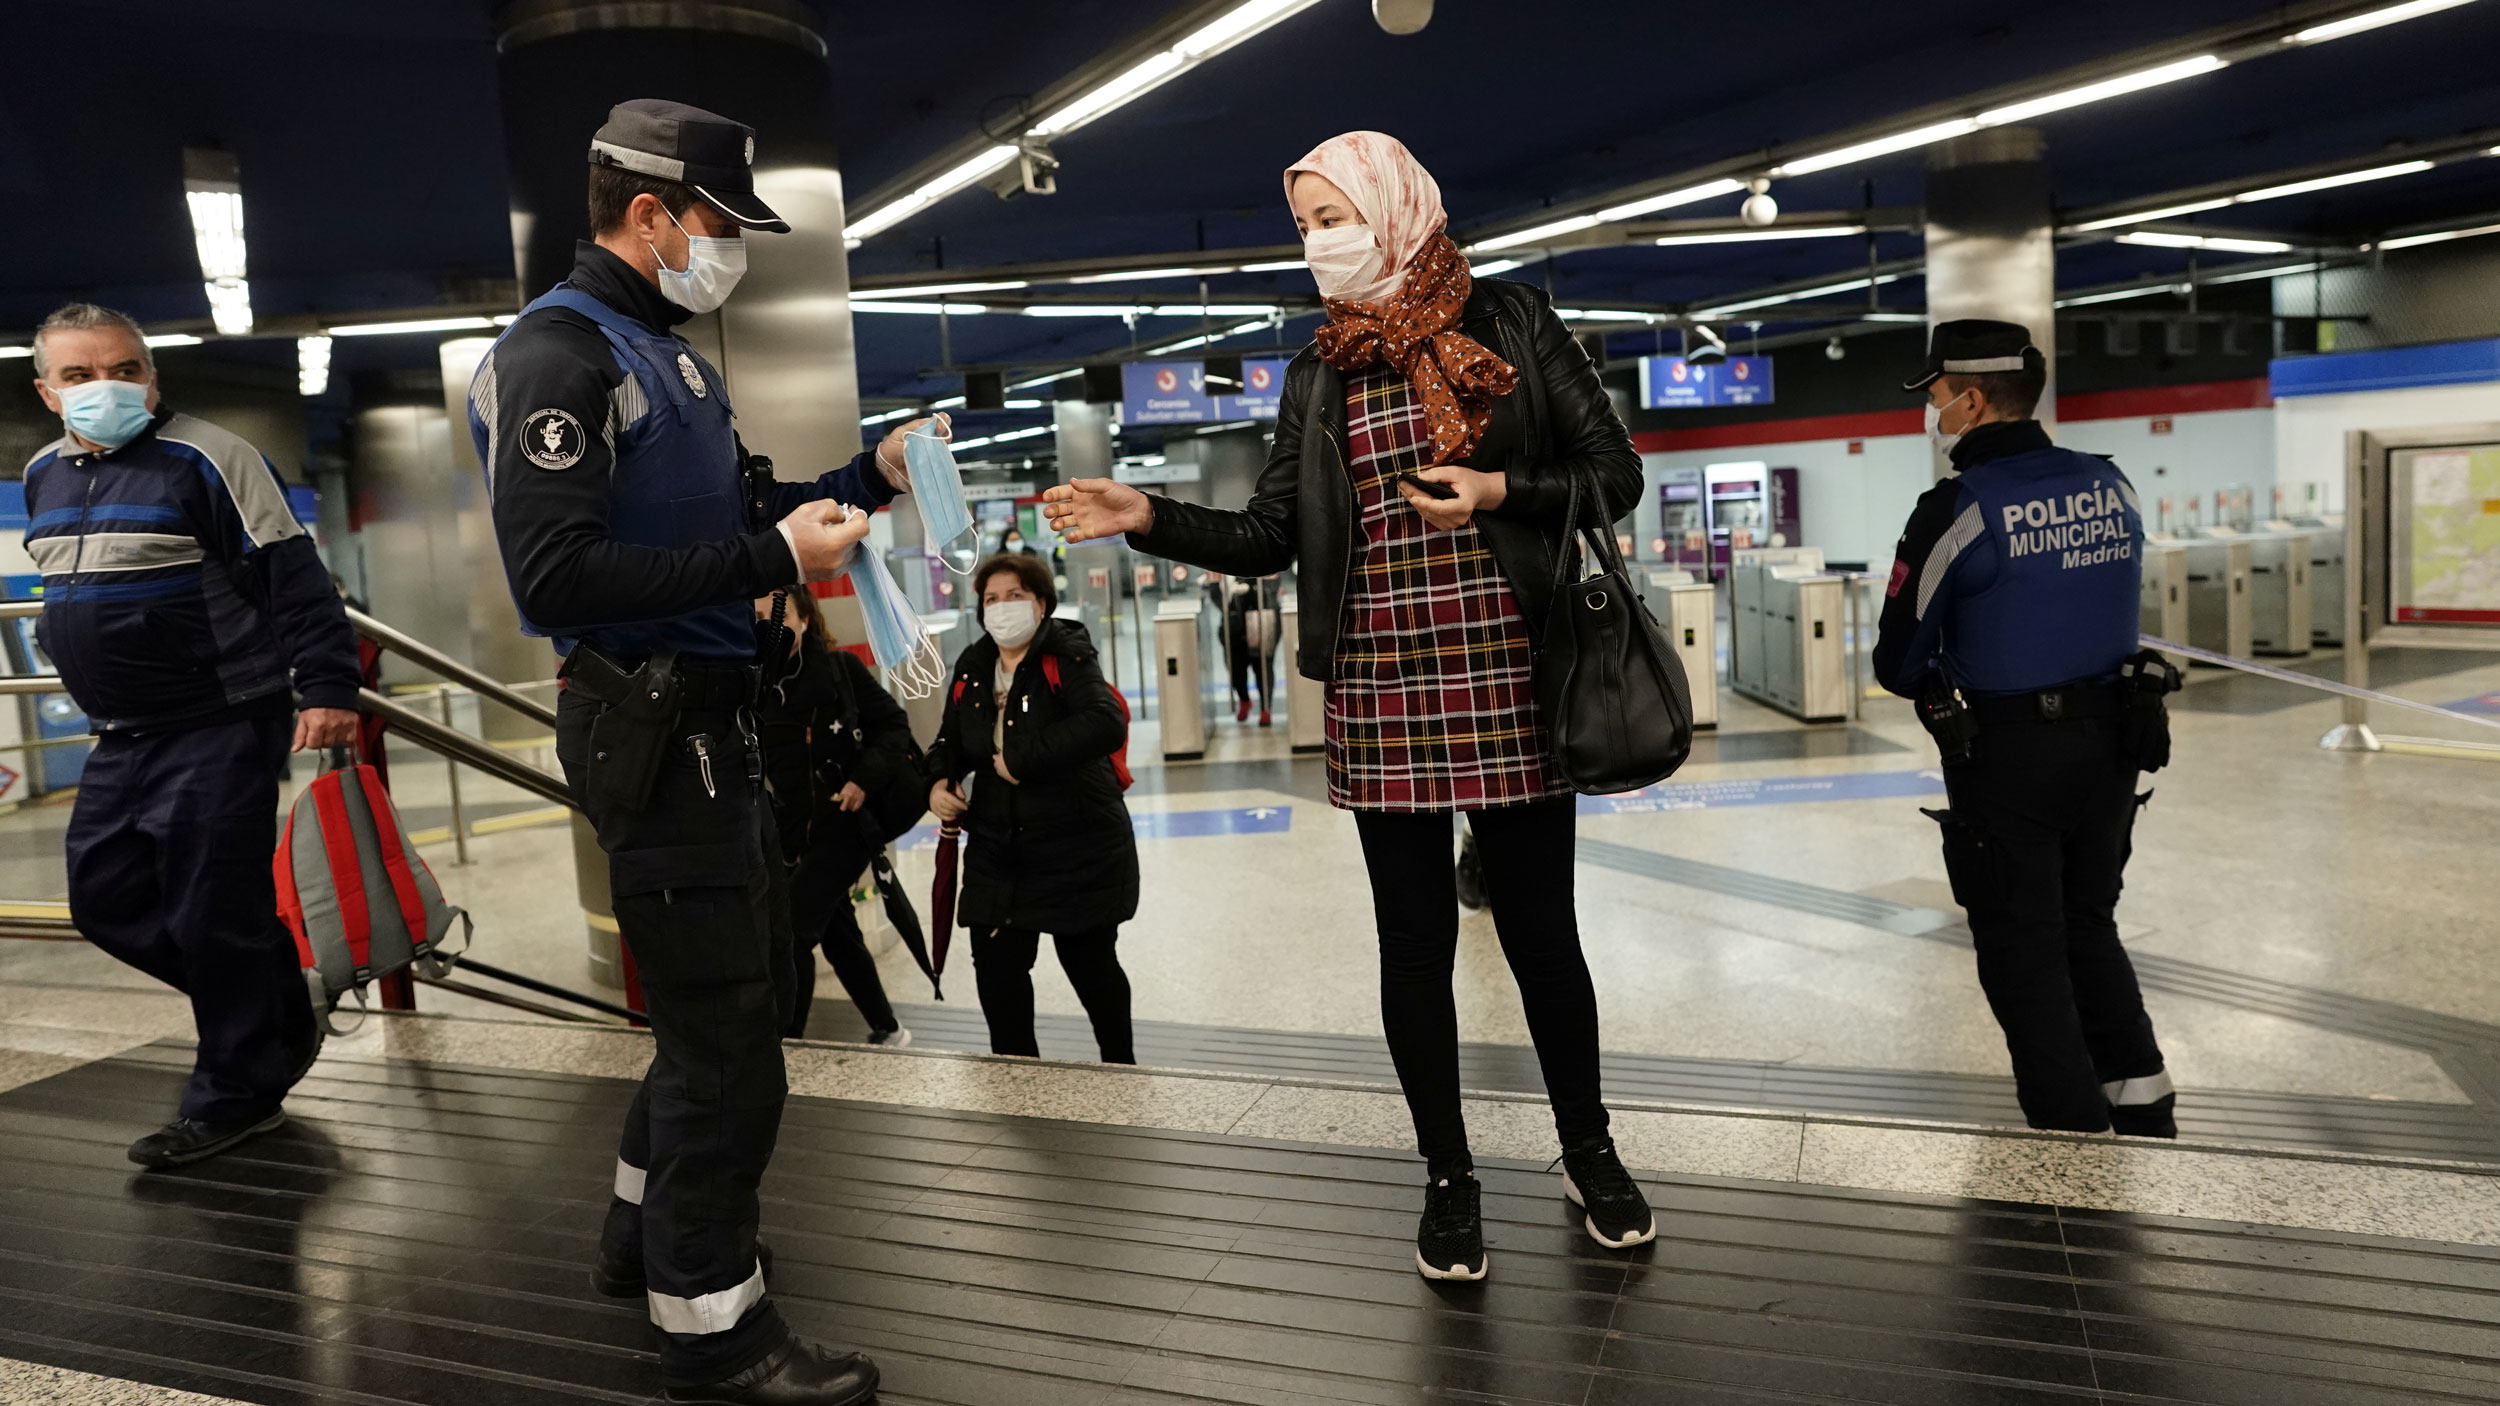 A police officer is shown holding several protective face masks and handing one out to a woman standing adjacent.